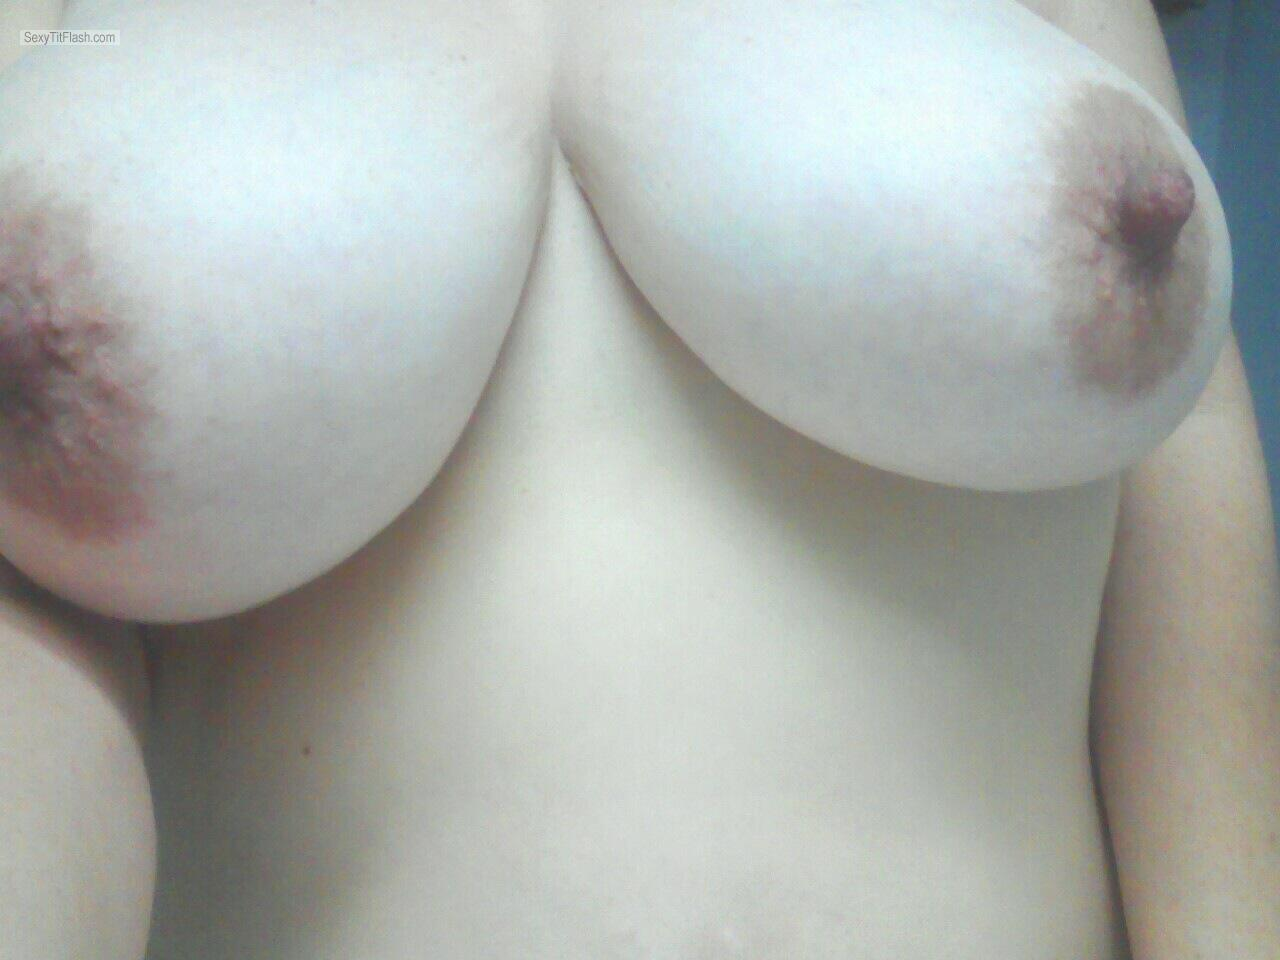 Big Tits Of A Friend Topless Selfie by Hot Housewife Houston